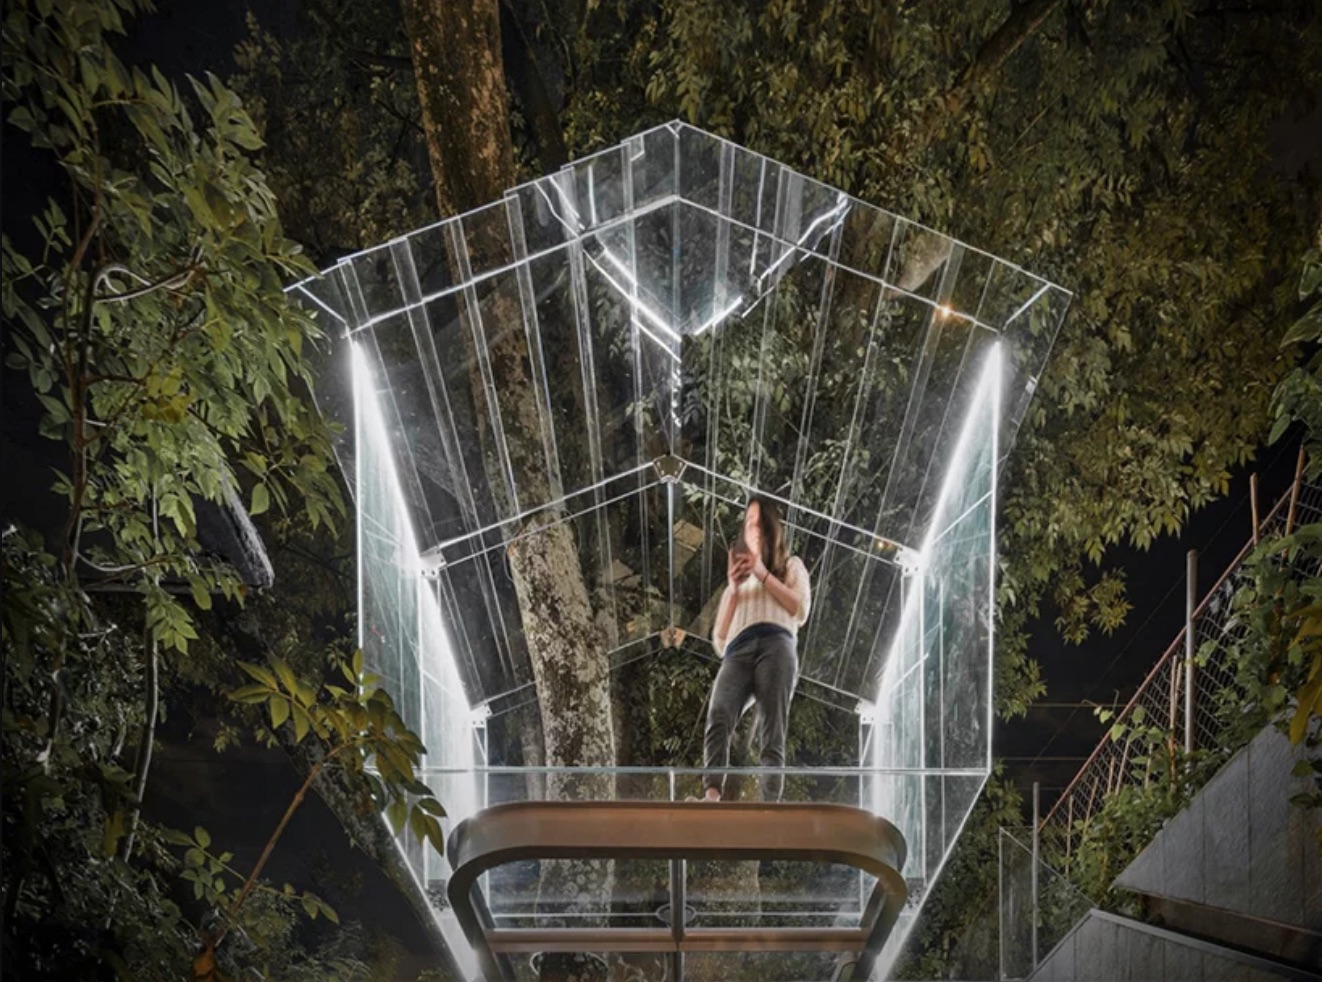 Woman in glass treehouse at night